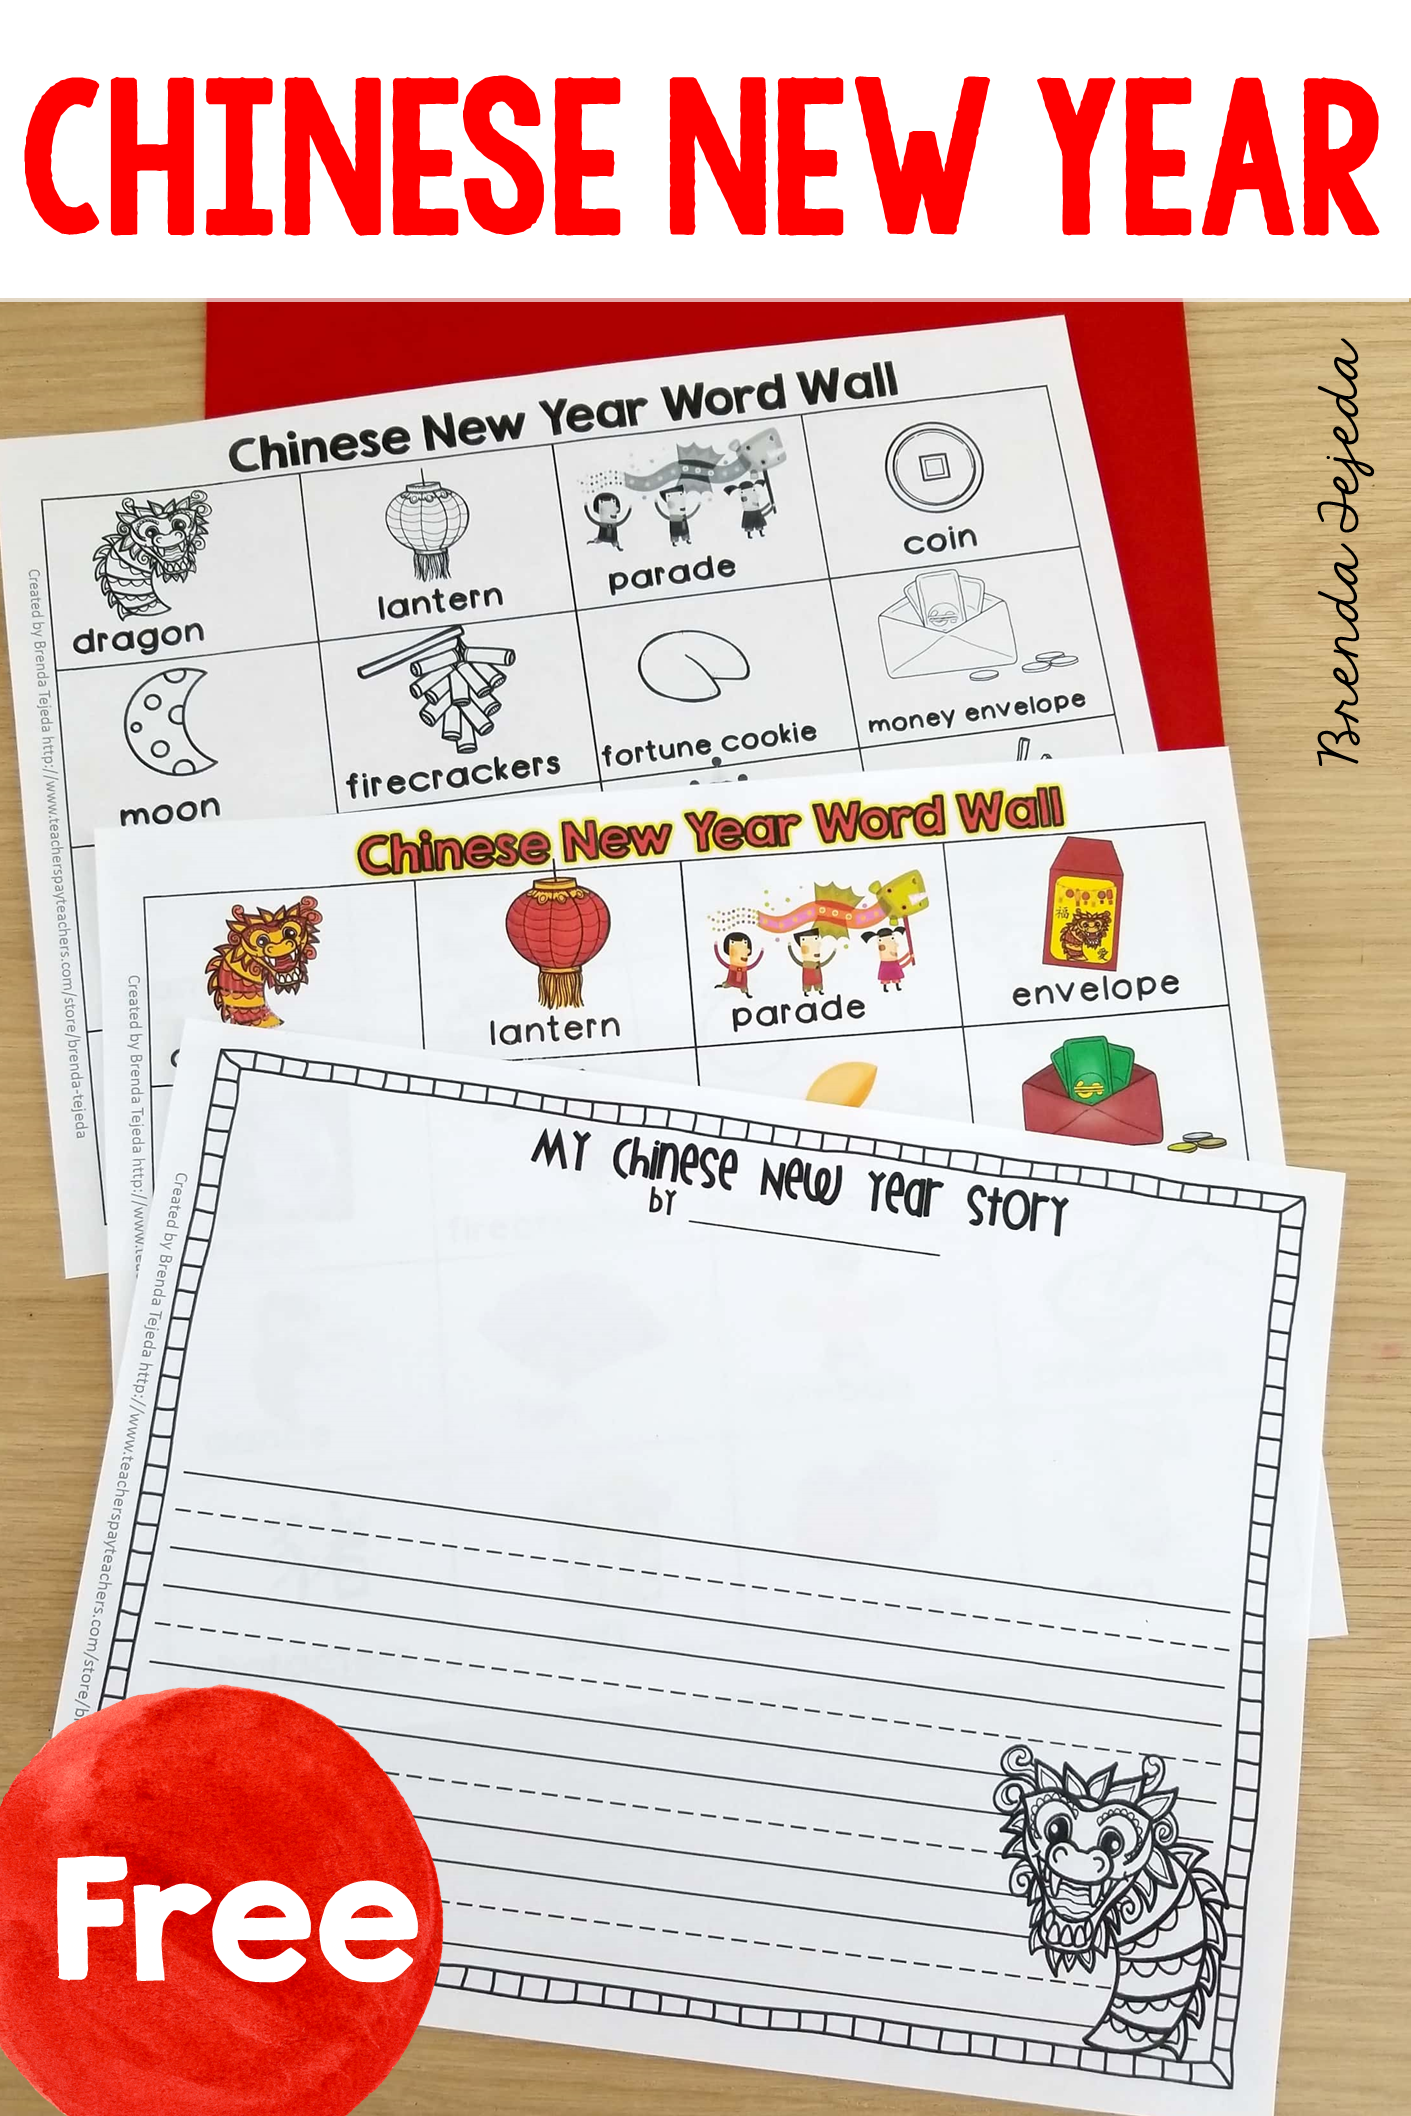 Free Chinese New Year Word Wall And Stationary Writing Center Chinese New Year Activities New Year Words Chinese New Year Crafts